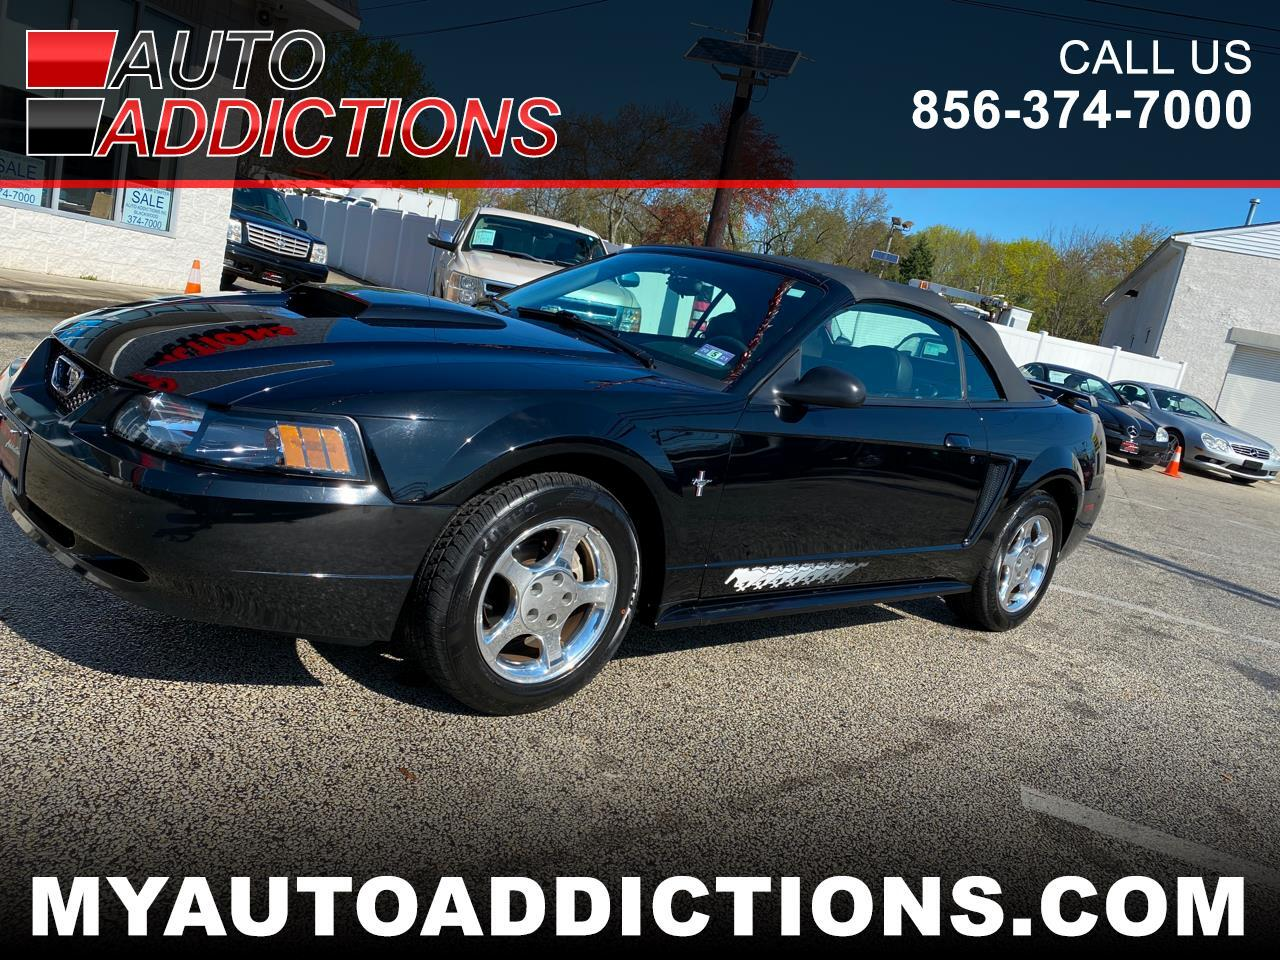 Ford Mustang 2dr Conv Premium 2003